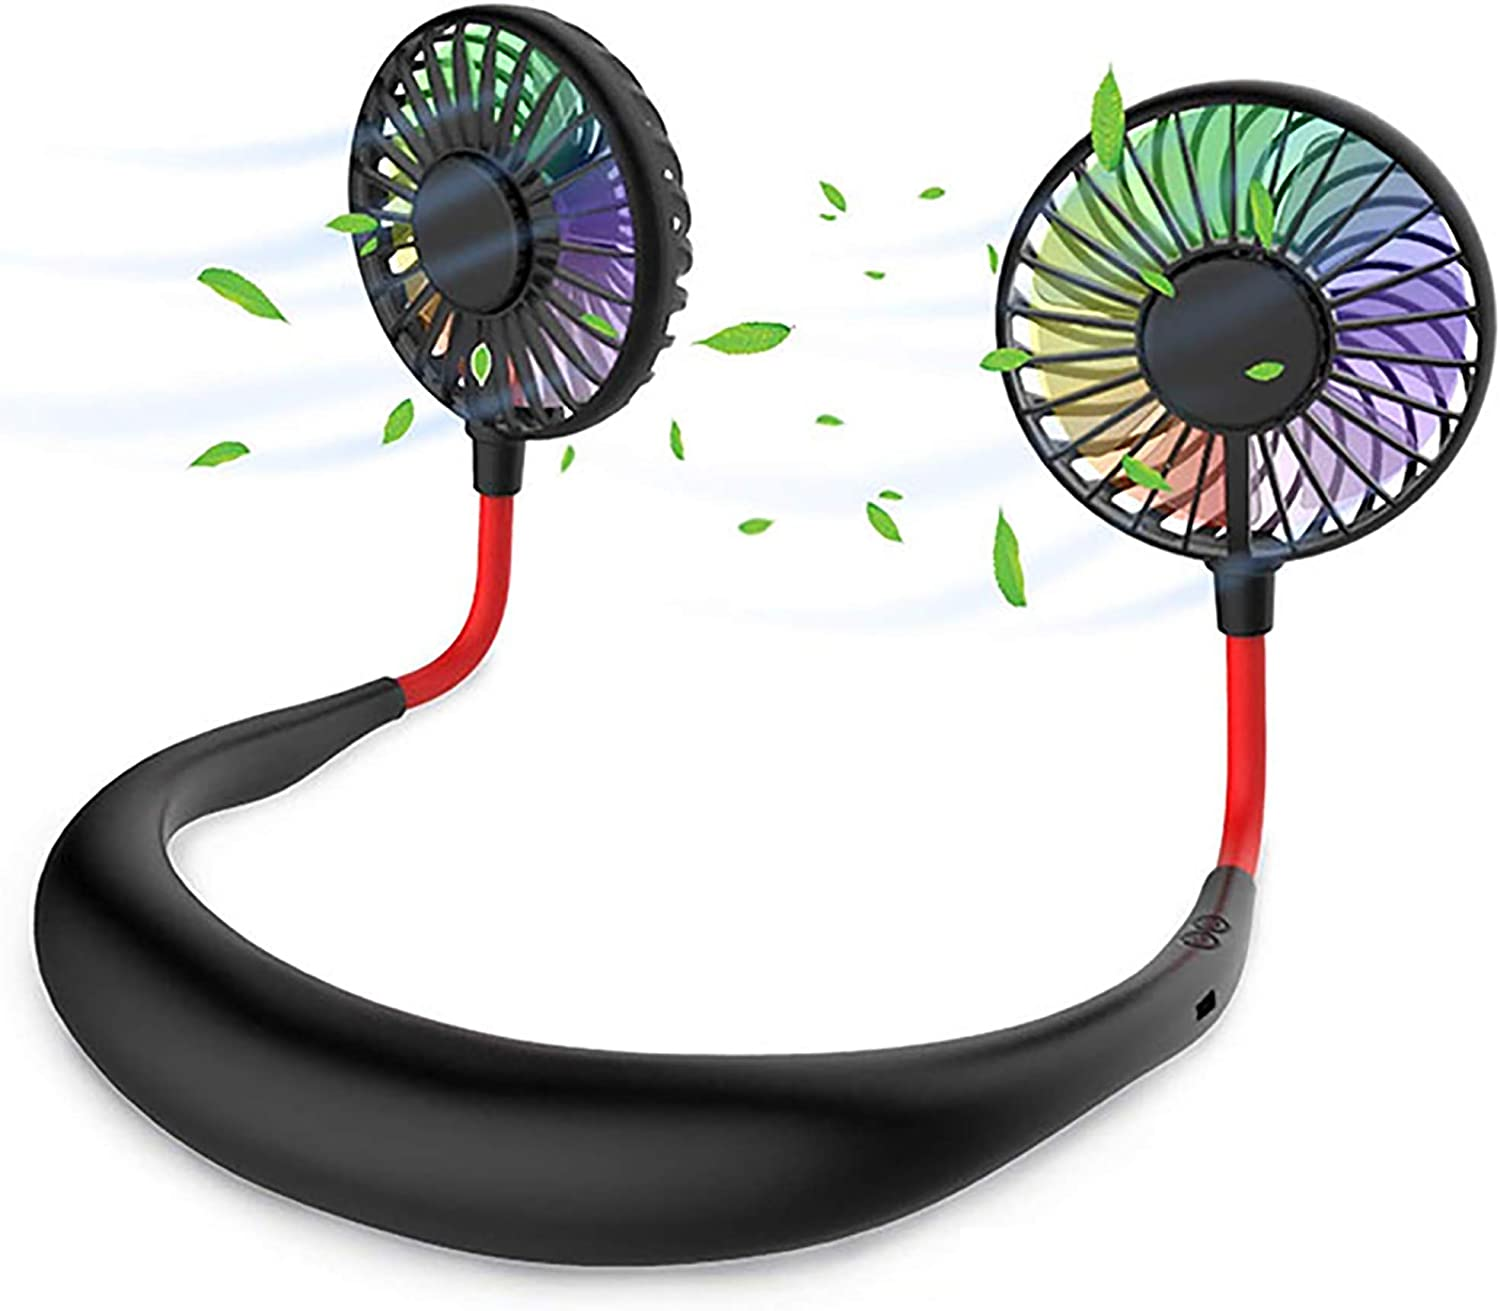 Portable Neck USB Fan - Hand Free Ultra Quiet Portable Neck Sports Fans, USB Rechargeable Personal Wearable Fan   Adjustable Speeds, LED Lighting - for Home Office Outdoor Travel & Mask Wearing